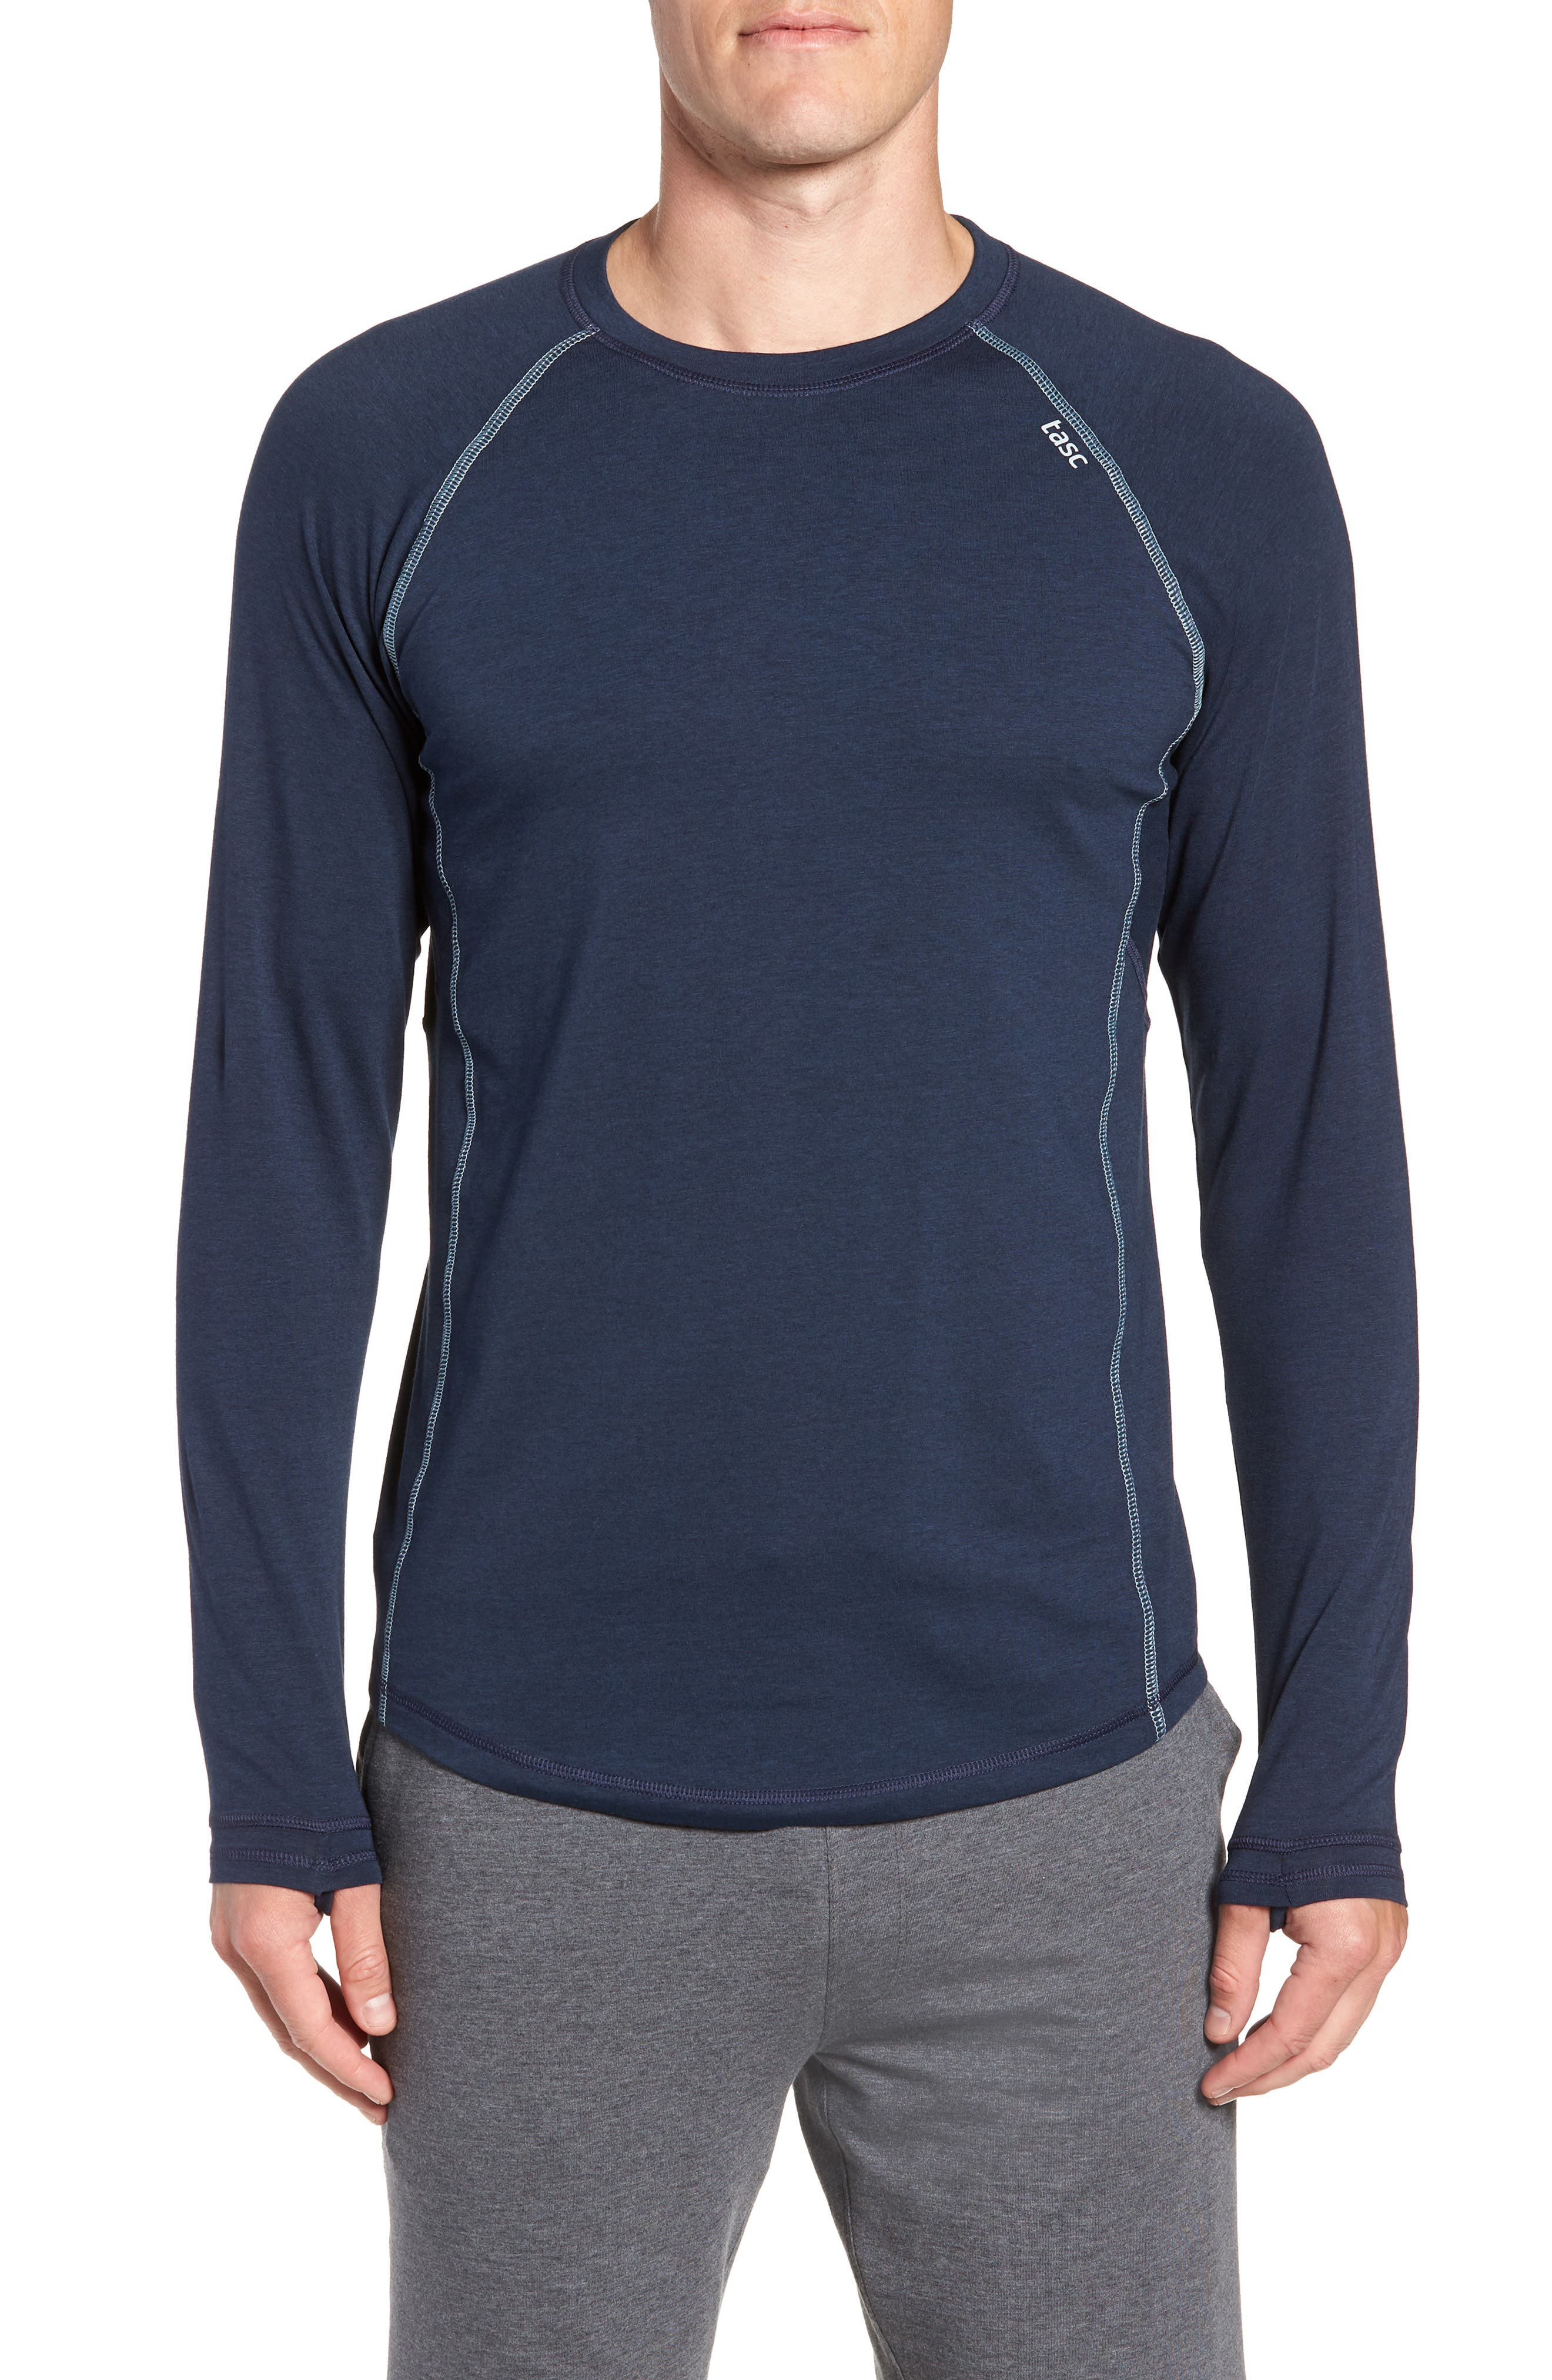 Charge II Long Sleeve T-Shirt,                             Main thumbnail 1, color,                             CLASSIC NAVY/ TRANQUILITY SEA